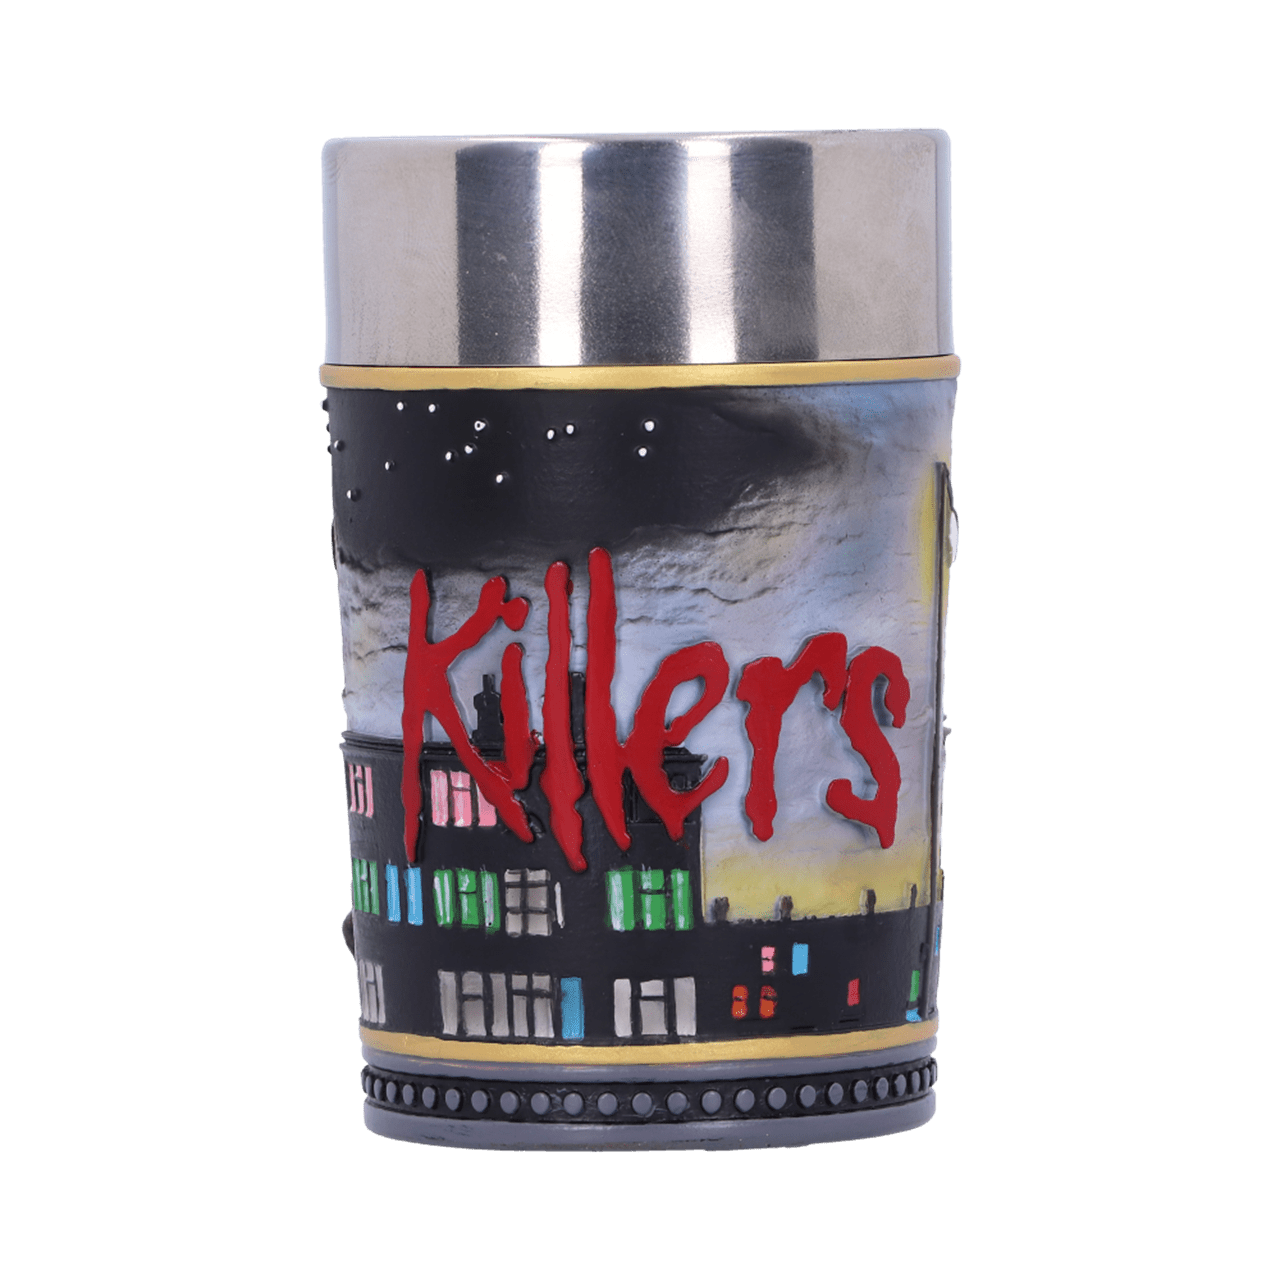 Iron Maiden: The Killers Shot Glass - 2